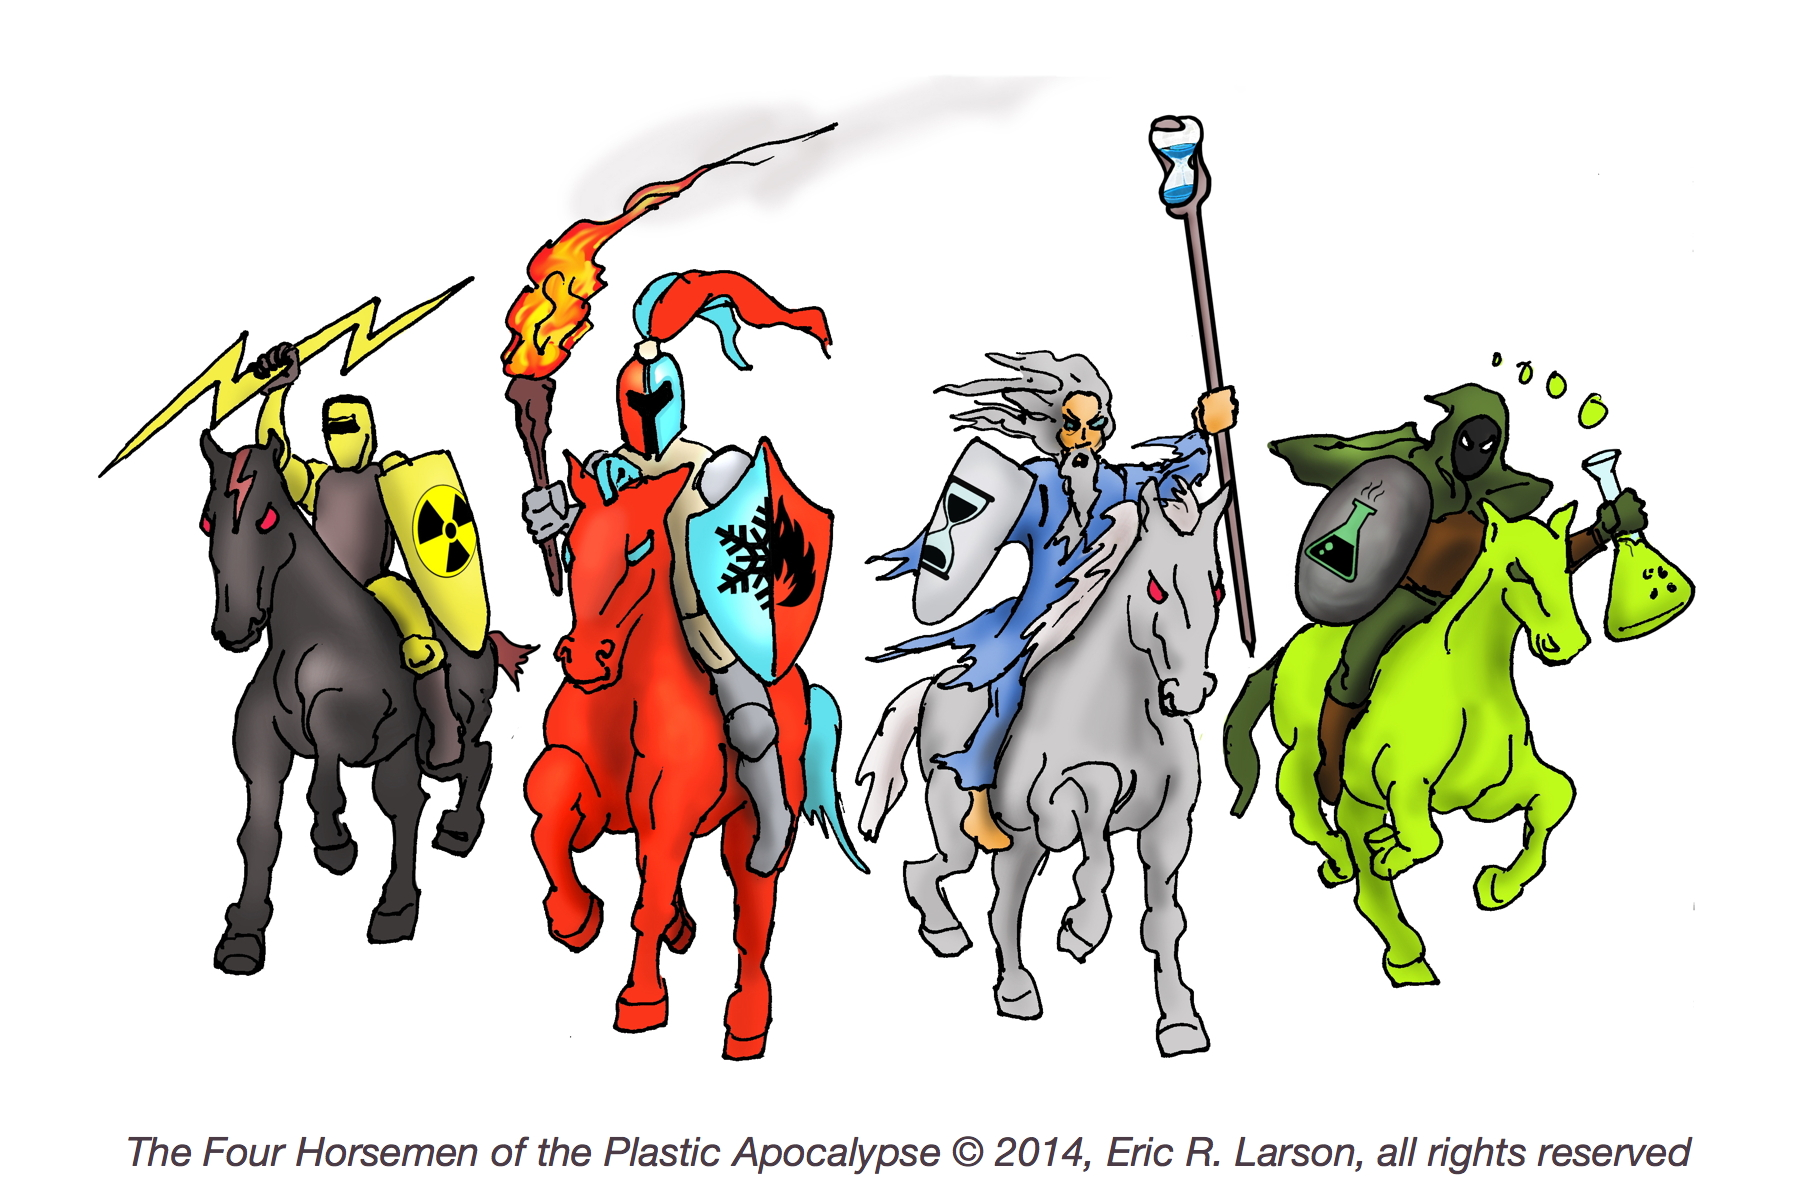 The Four Horsemen of the Plastic Apocalypse